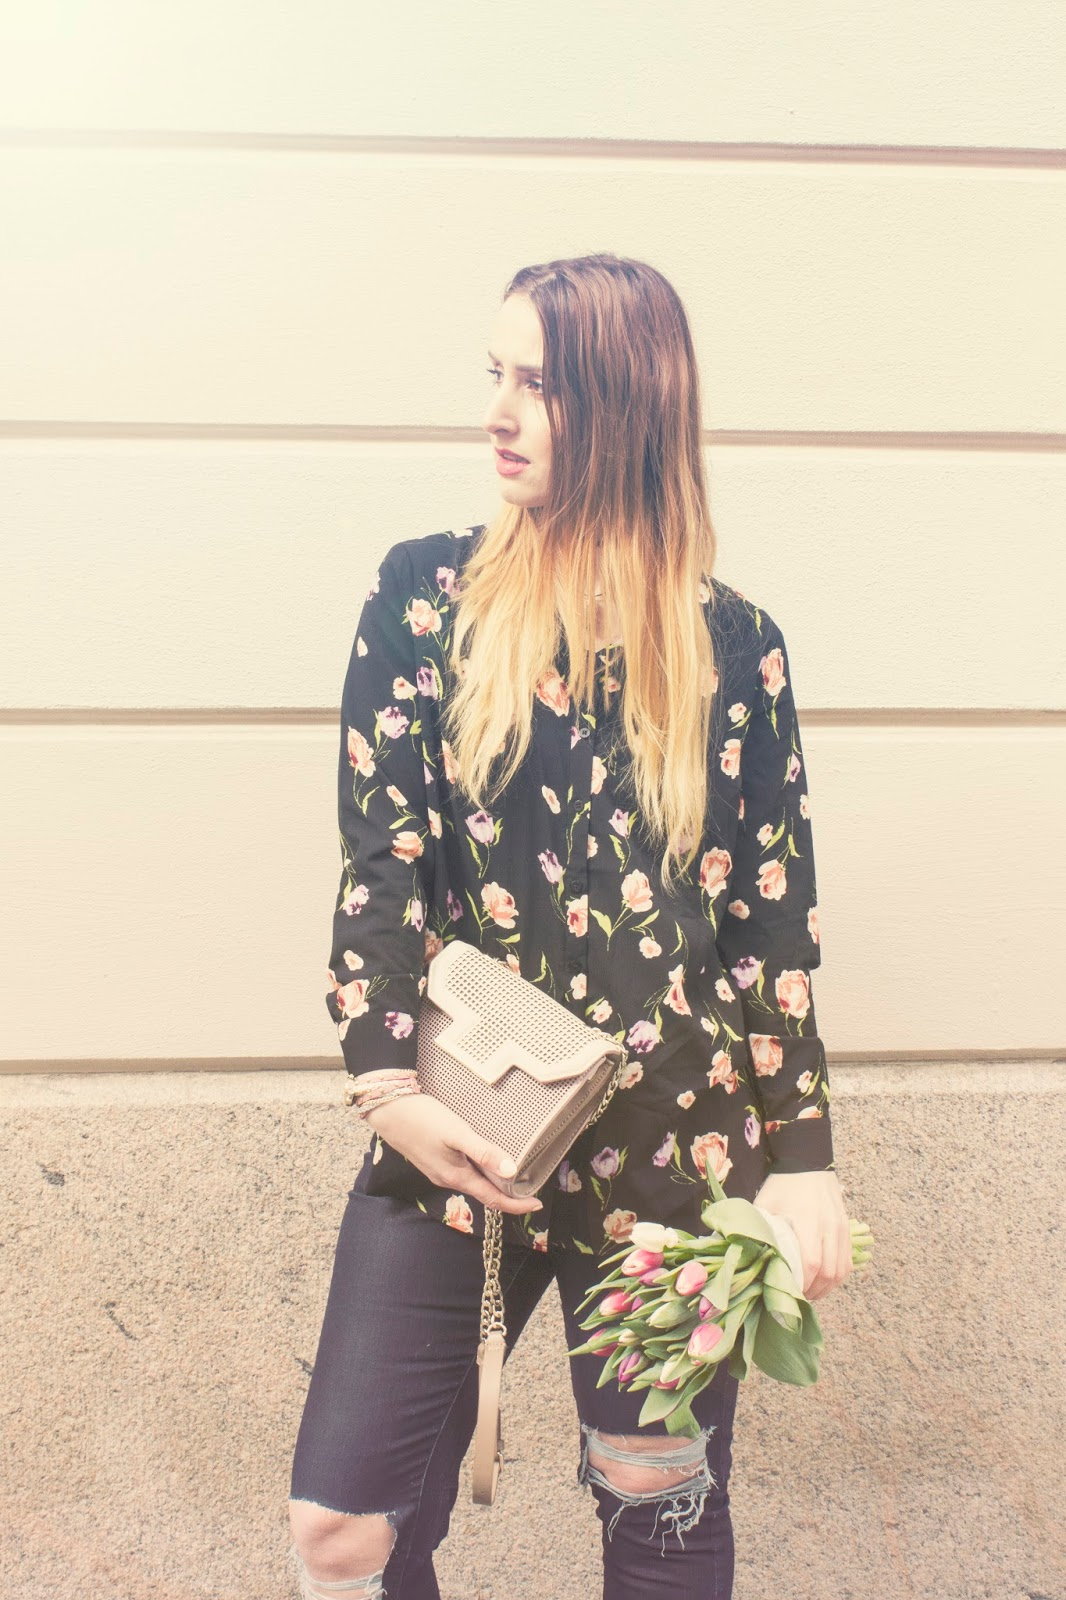 floral print shirt outfit, monky floral shirt, ripped jeans, flowers look